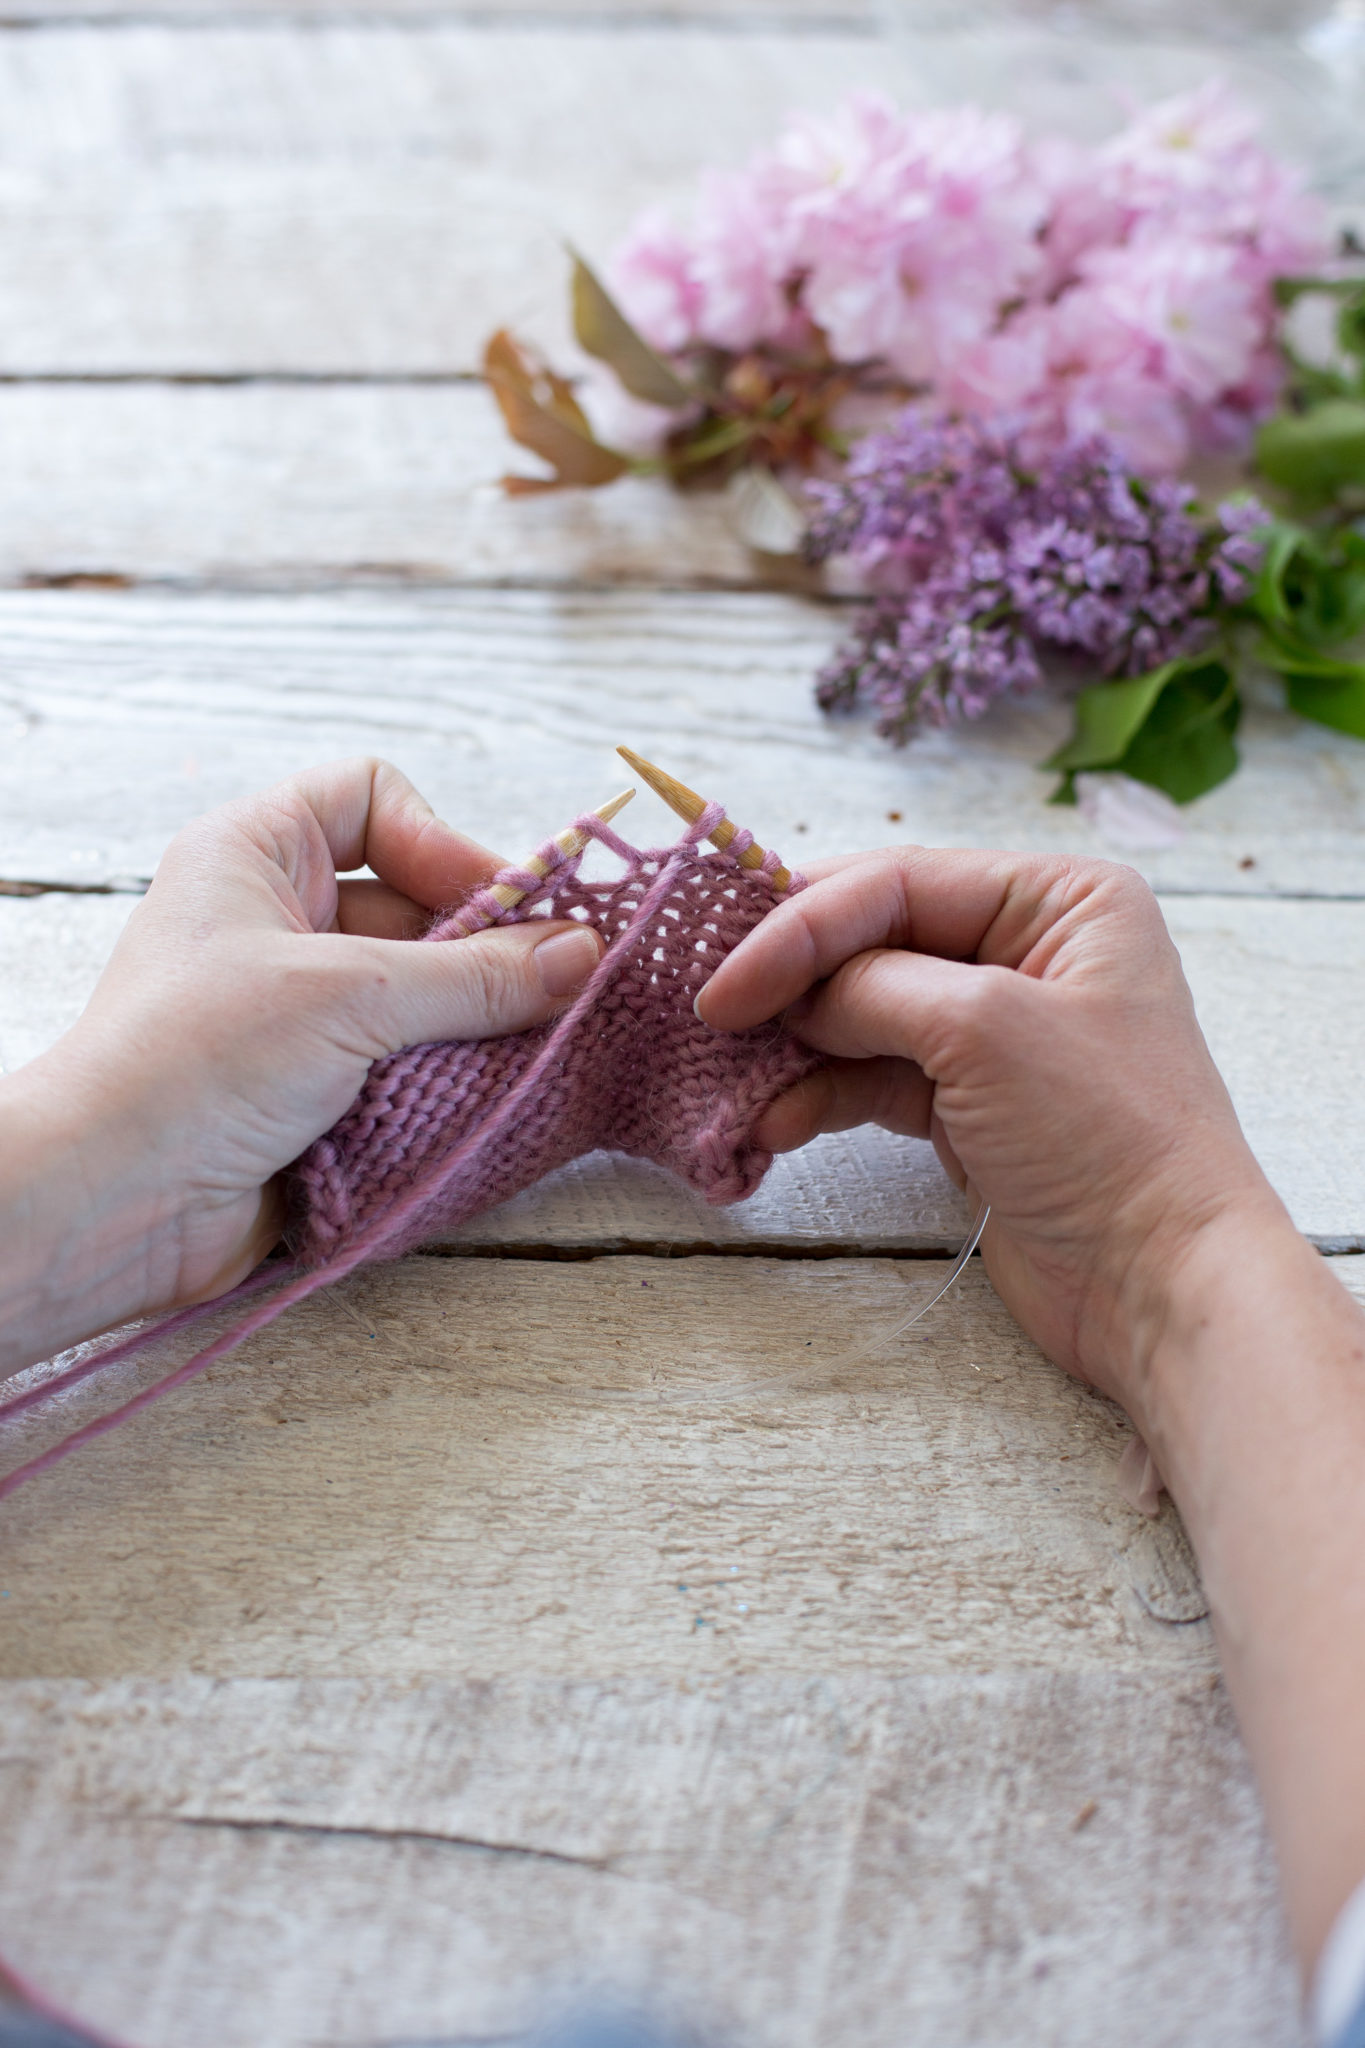 Knitting Adding Extra Stitches : Fixing Common Knitting Mistakes - Flax & Twine